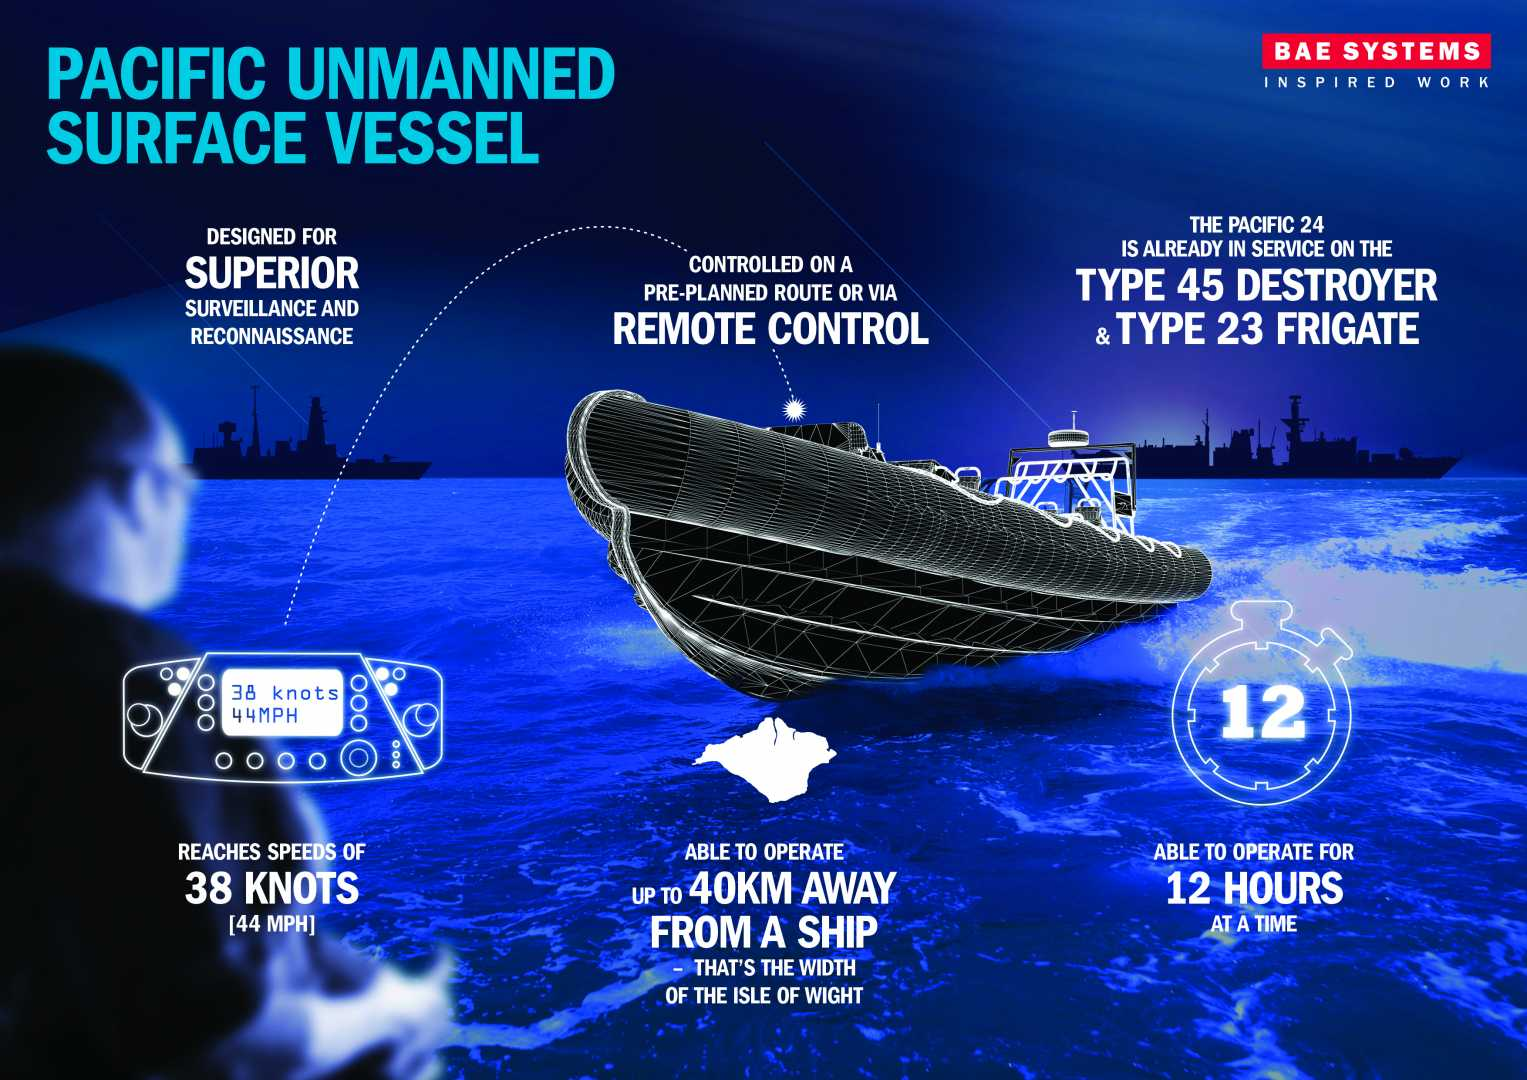 Unmanned boat technology information from BAE Systems.